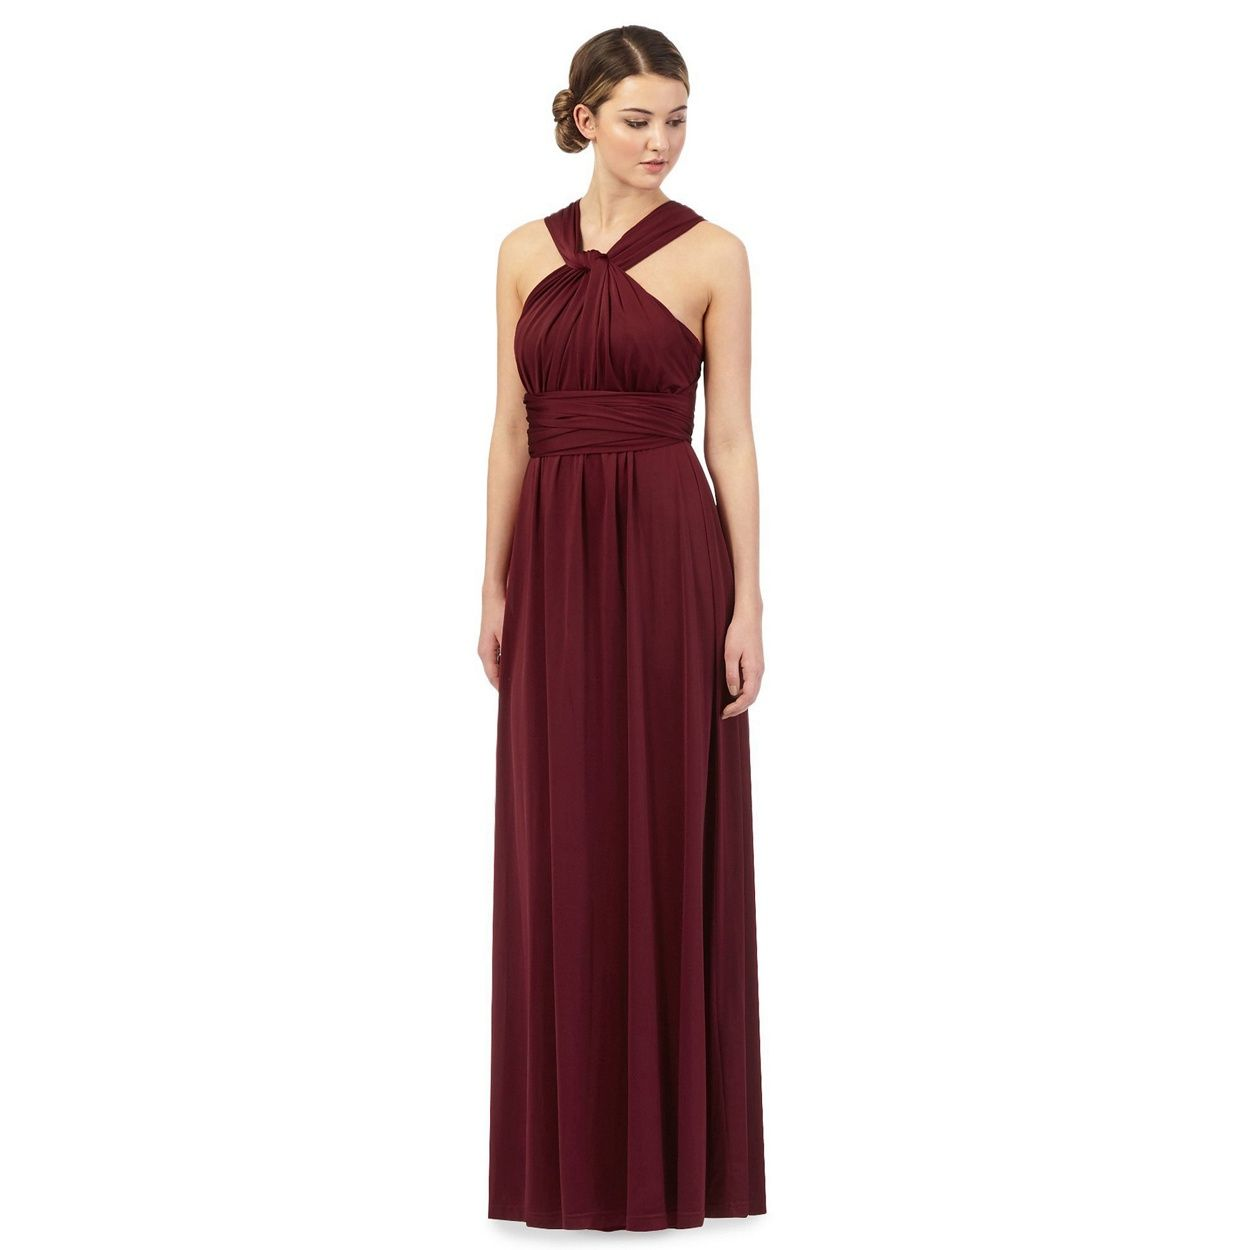 Debut multiway evening dress from debenhams dark red 99 debut multiway evening dress from debenhams dark red 99 ombrellifo Choice Image